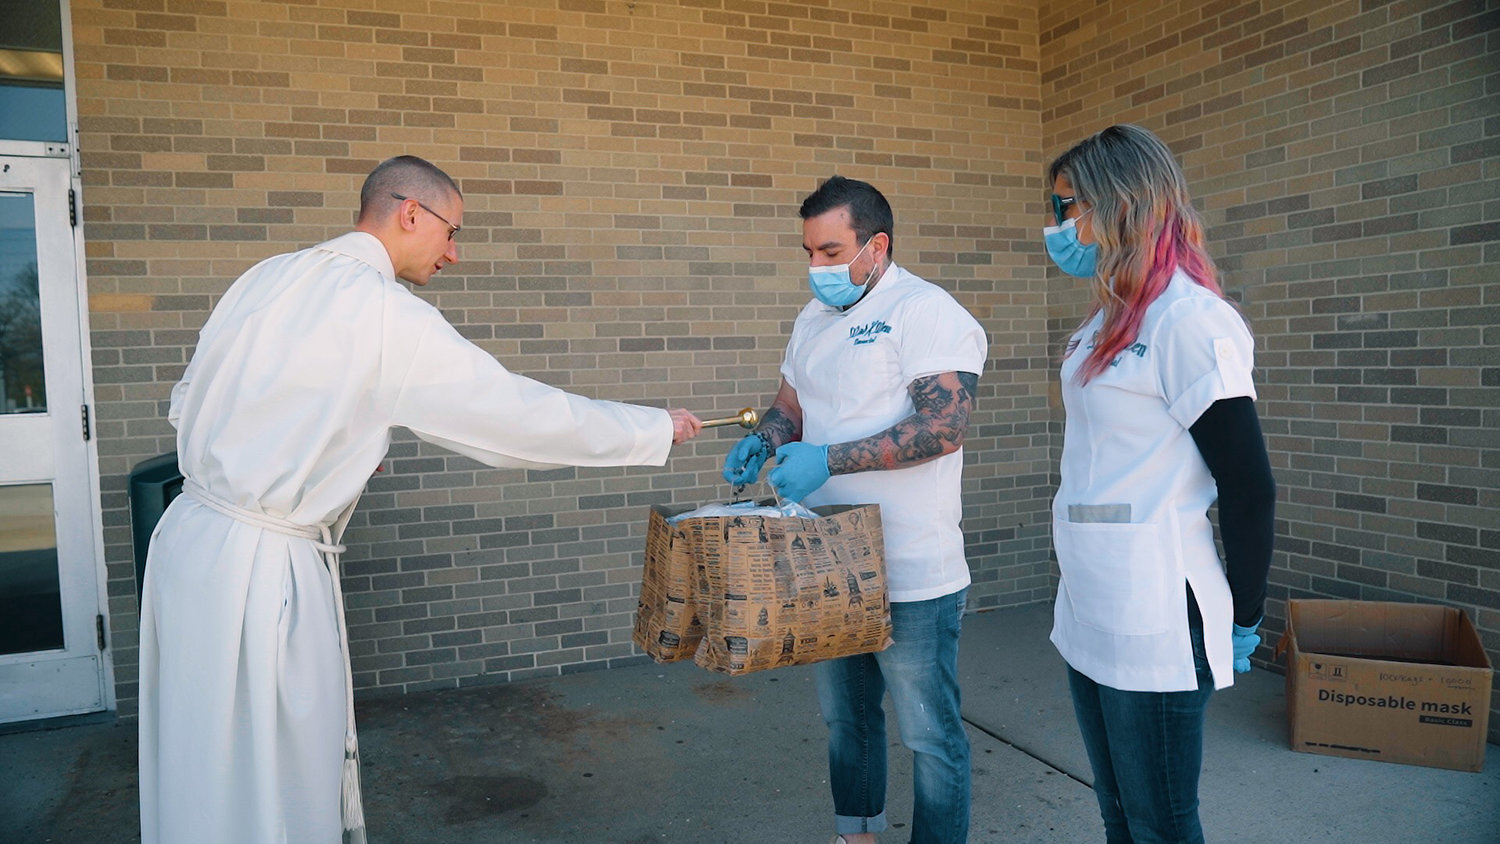 Rev. Liam McDonald blesses the masks and the couple. who gave out about 1,000 masks in honor of Easter; it was the second distribution, and the couple says more are to follow.